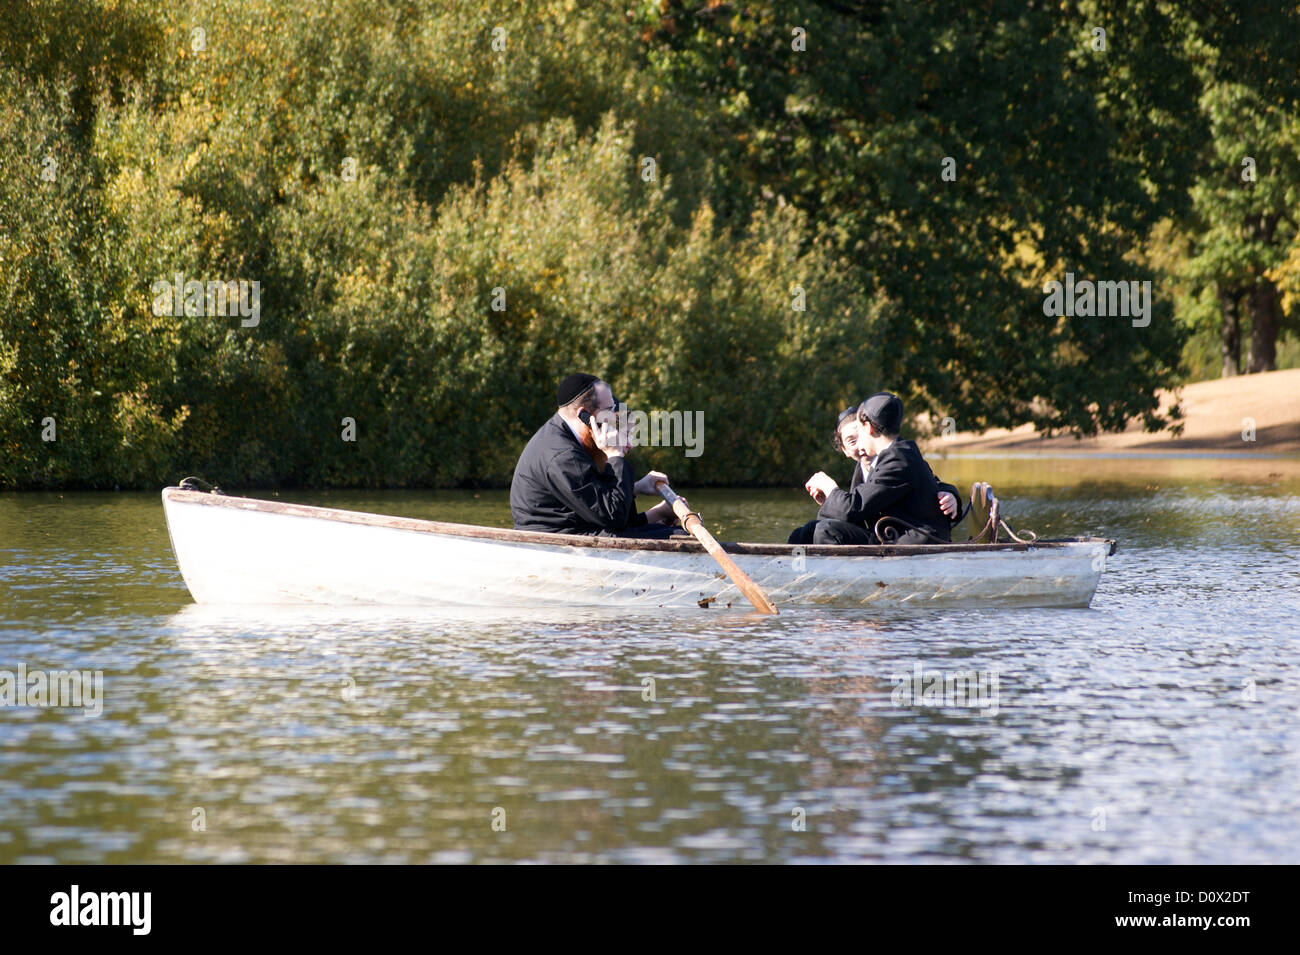 Orthodox Jewish man using a mobile phone in a rowing boat, Hollow Ponds, Leytonstone, London, England Stock Photo